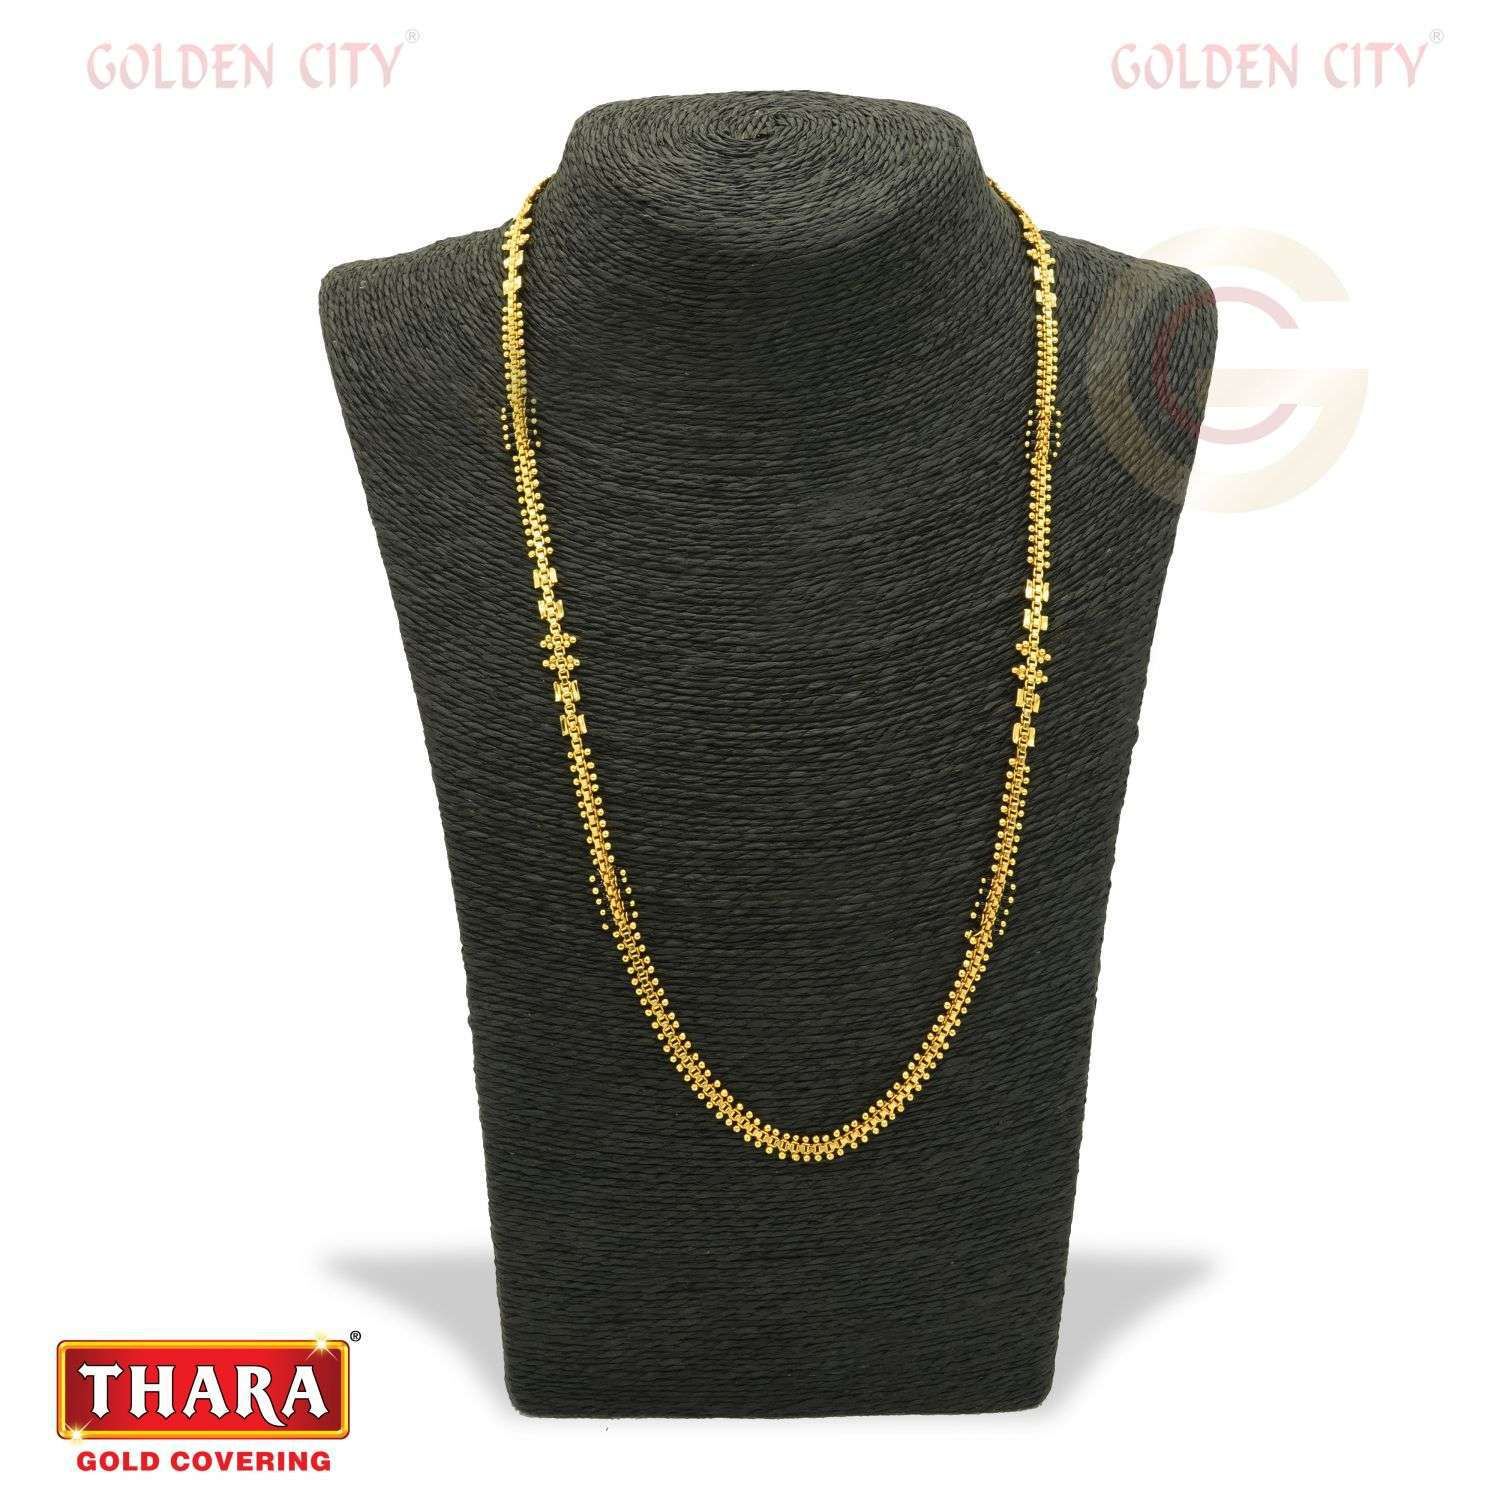 24 RAJCOT BLACK Fancy chain